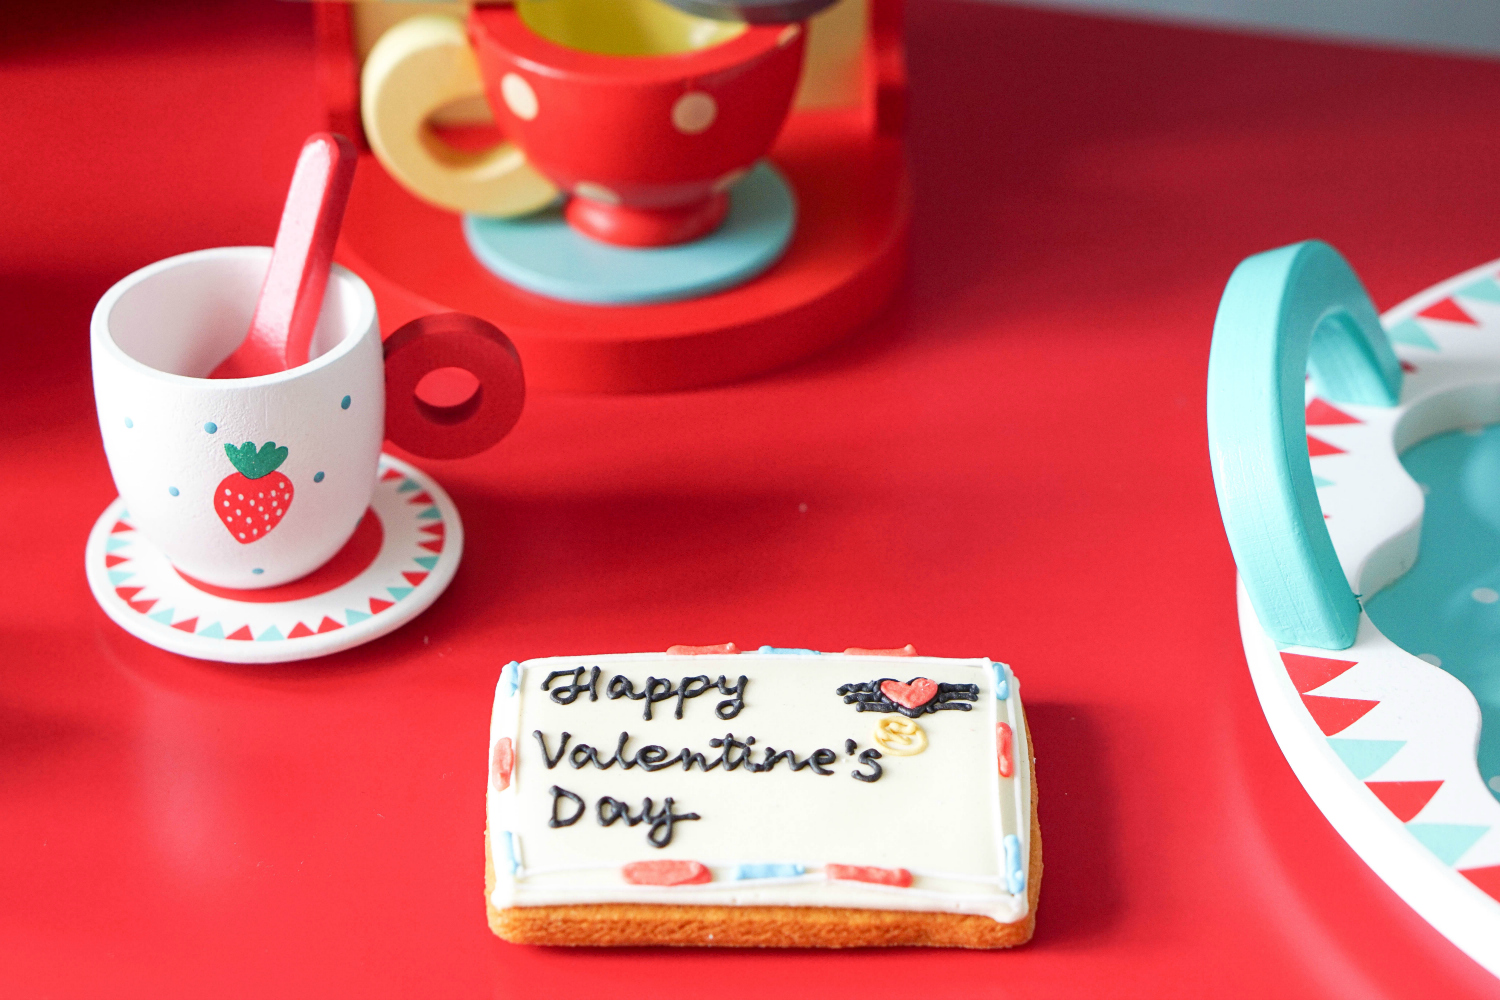 The Ordinary Lovely: A Valentine's afternoon tea treat for children